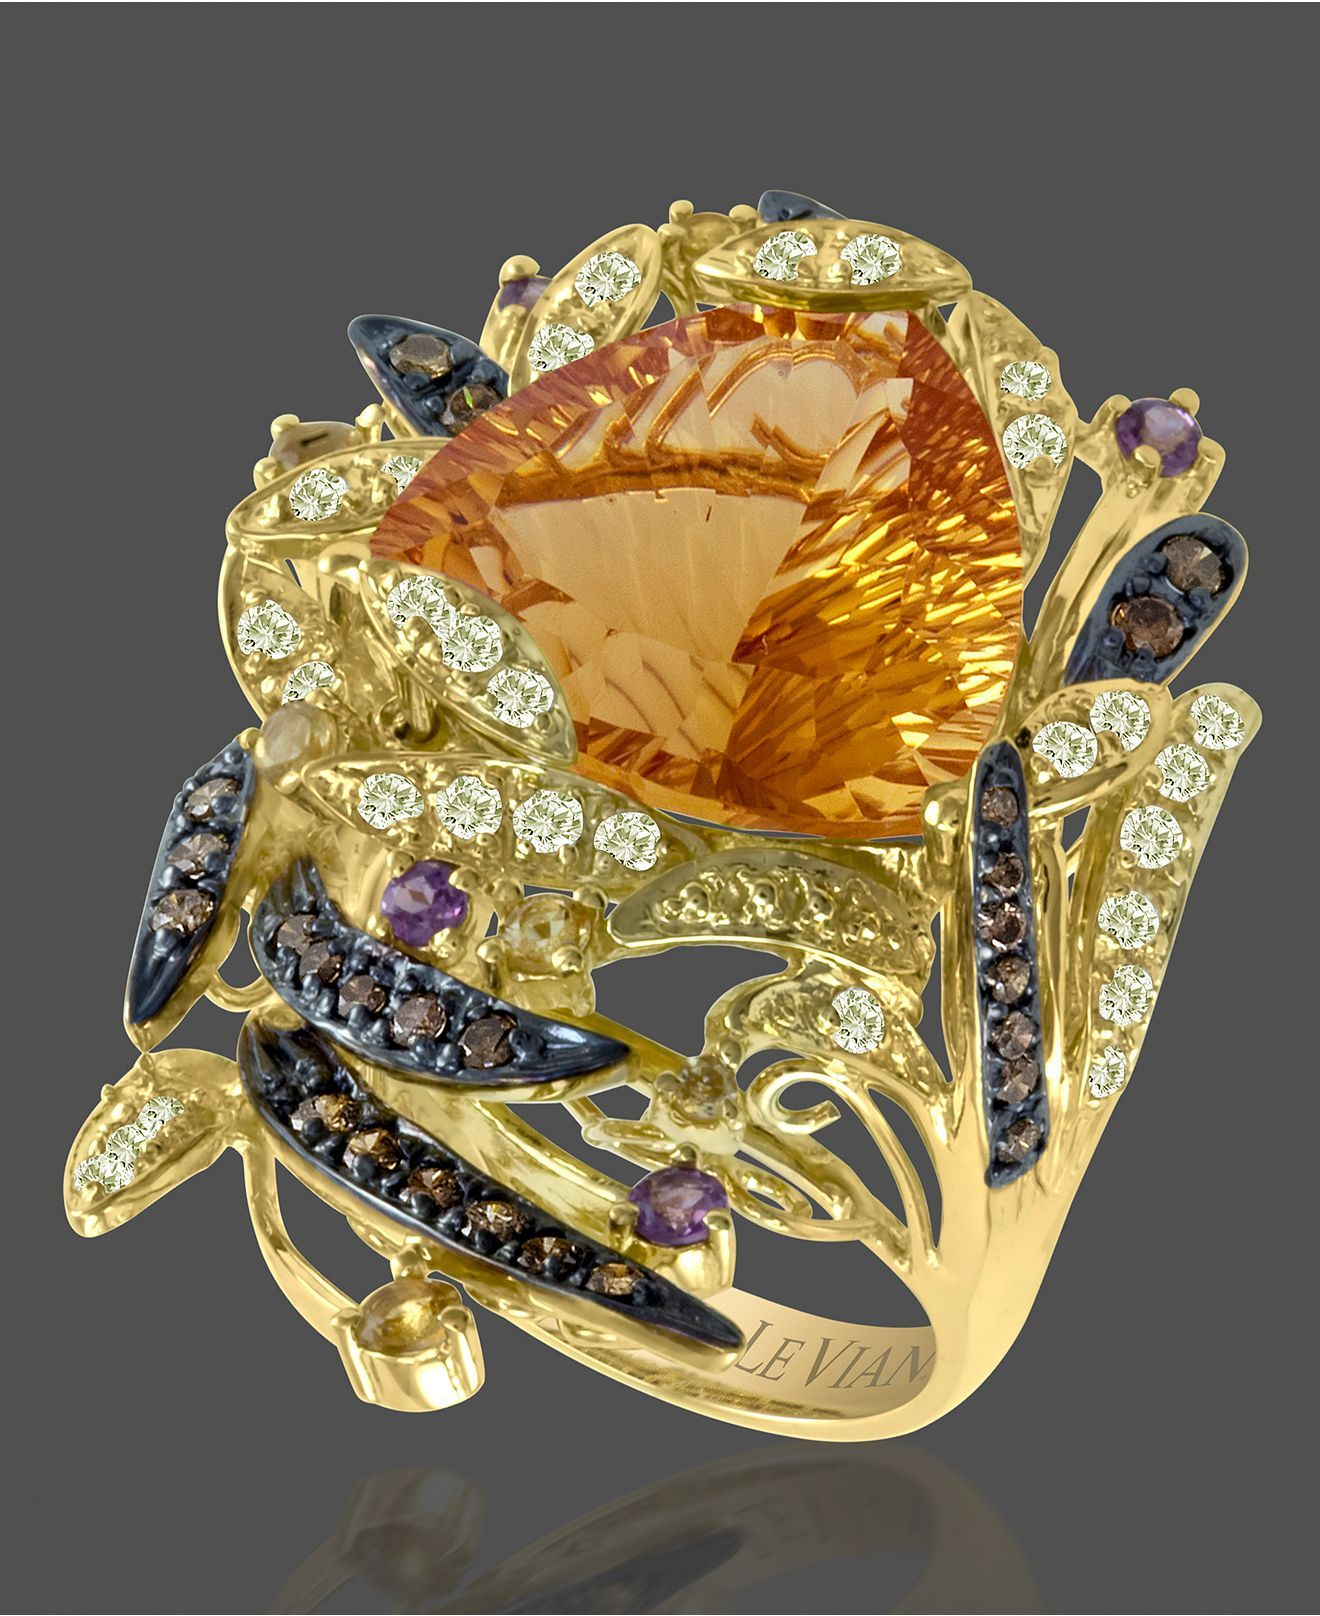 Rosamaria G Frangini | My Colorful Jewellery | TJS | Le Vian 14k Gold Ring, Citrine, White Topaz , Chocolate Diamond and Garnet - unique jewelry